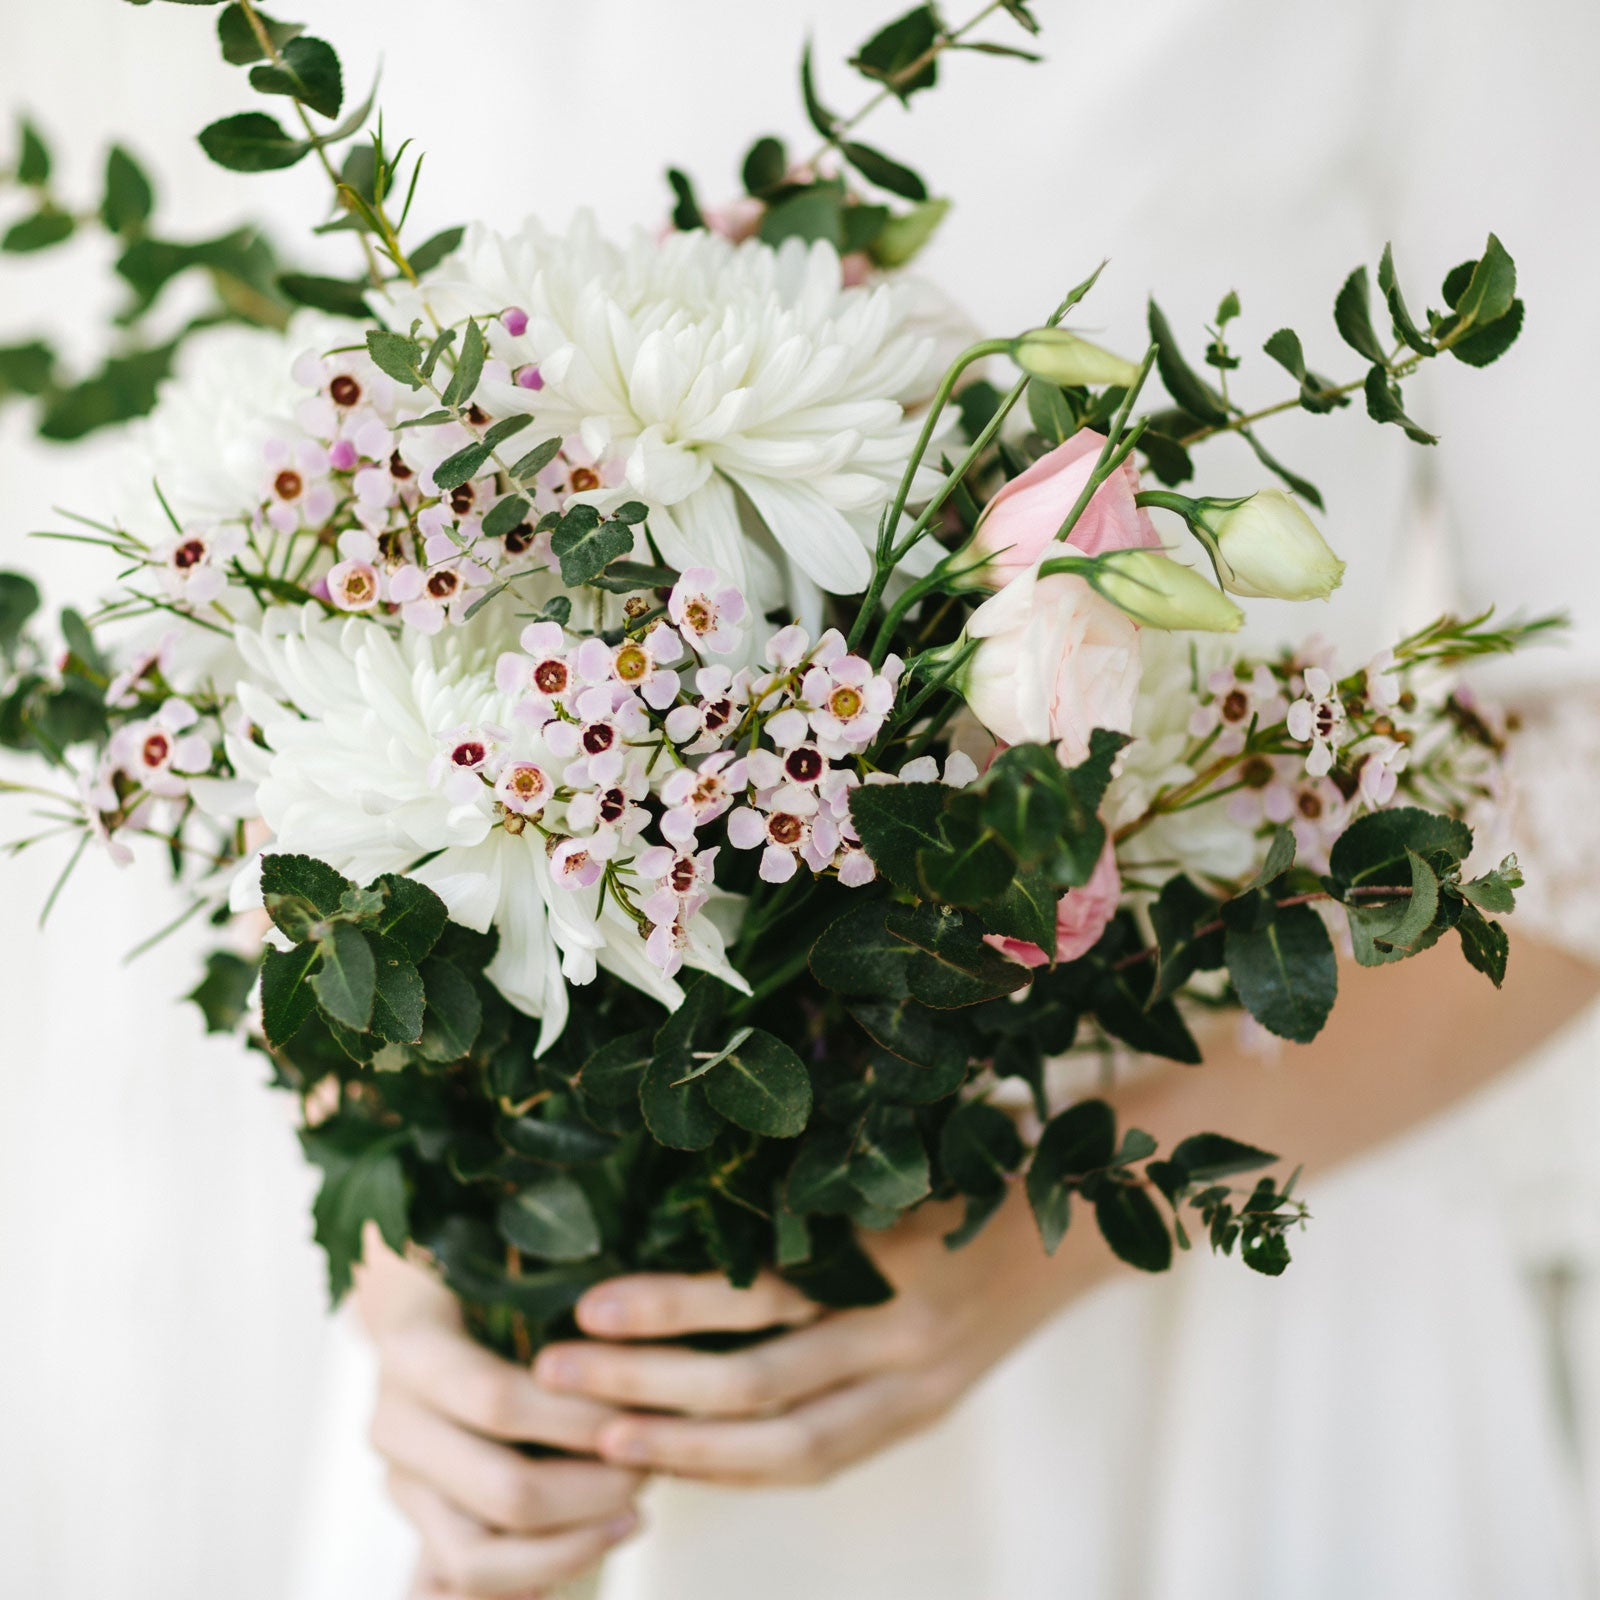 Haberfield florist buy flowers online in store delivery pickup bridal bouquet white with wax flowers izmirmasajfo Image collections